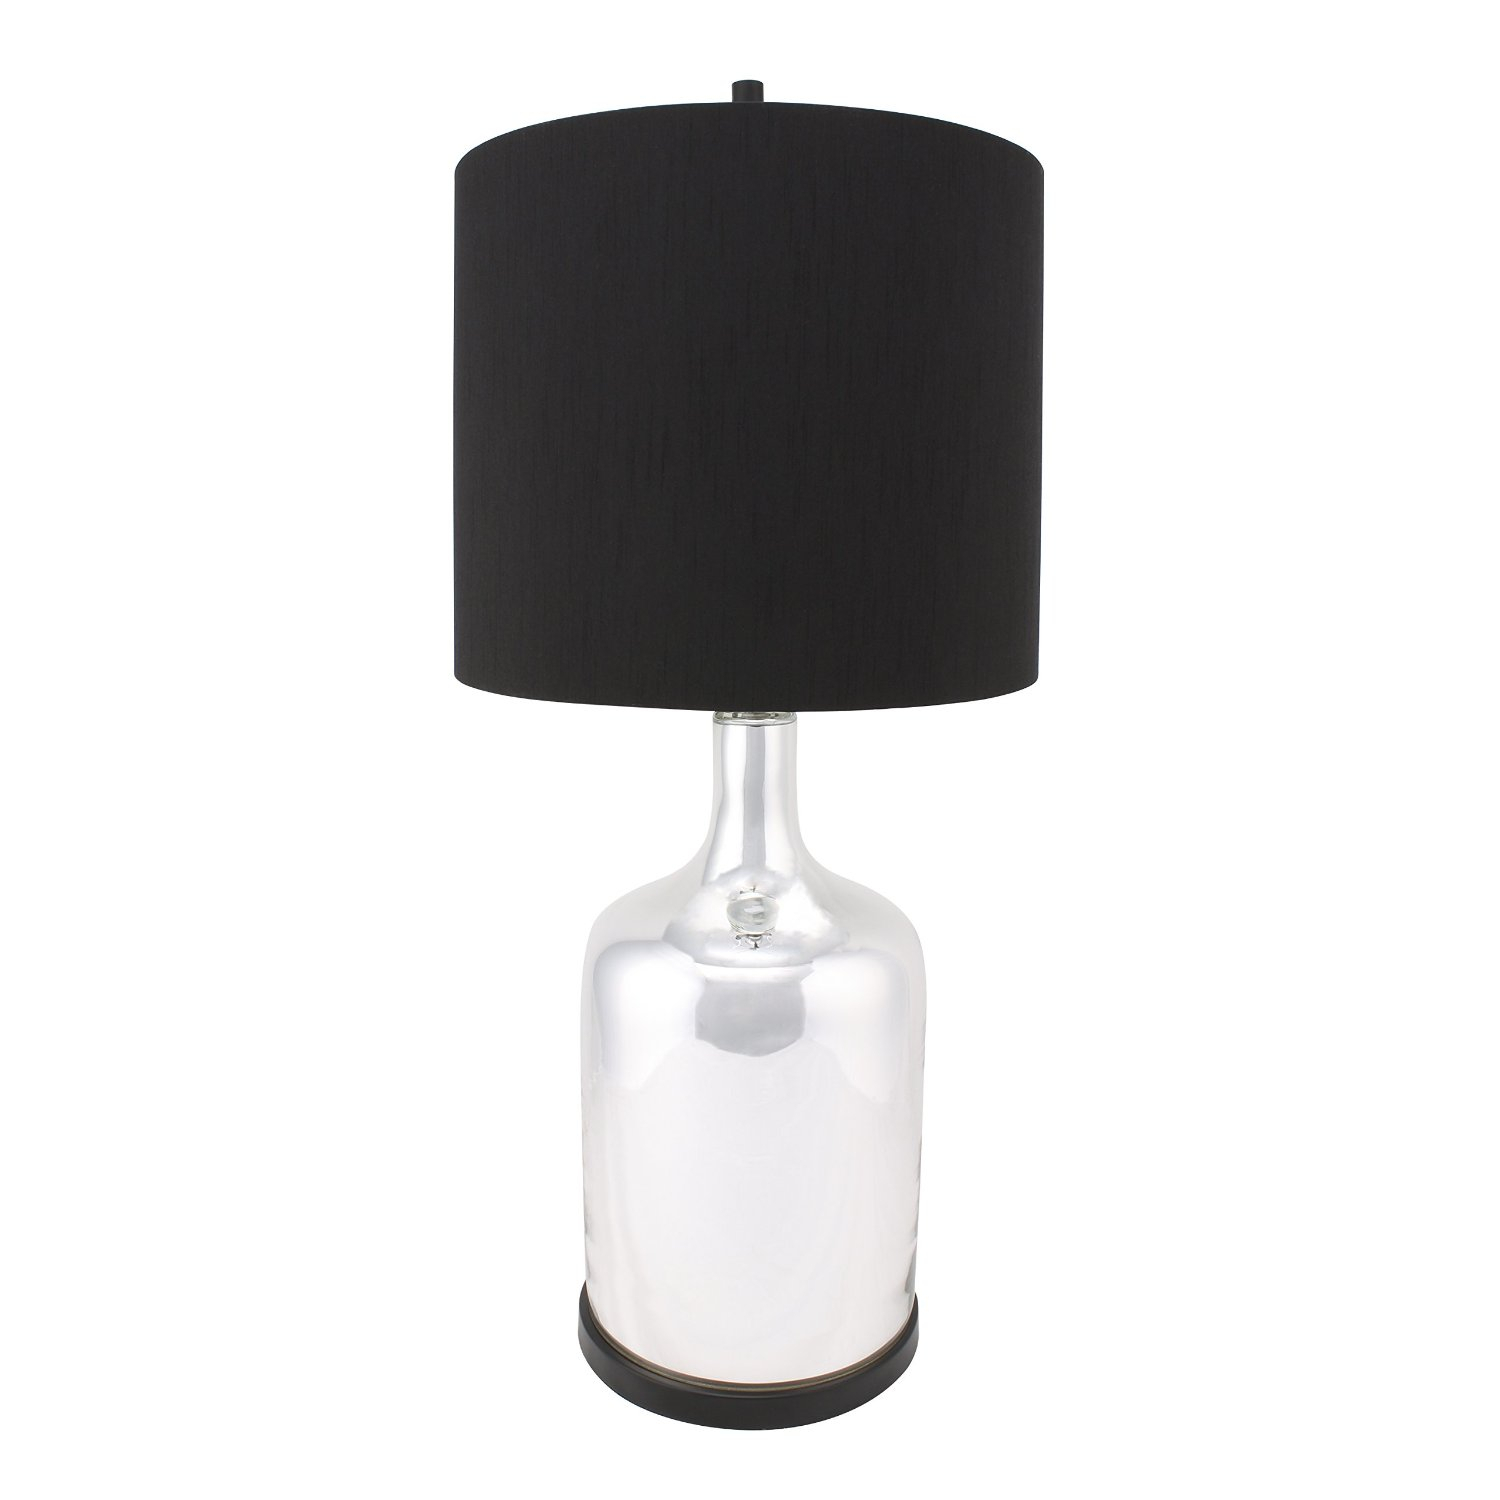 black metal table lamp base find inside bases flesner brushed steel accent with usb port inch high end tables reclaimed wood coffee outdoor furniture perth pier one promo code